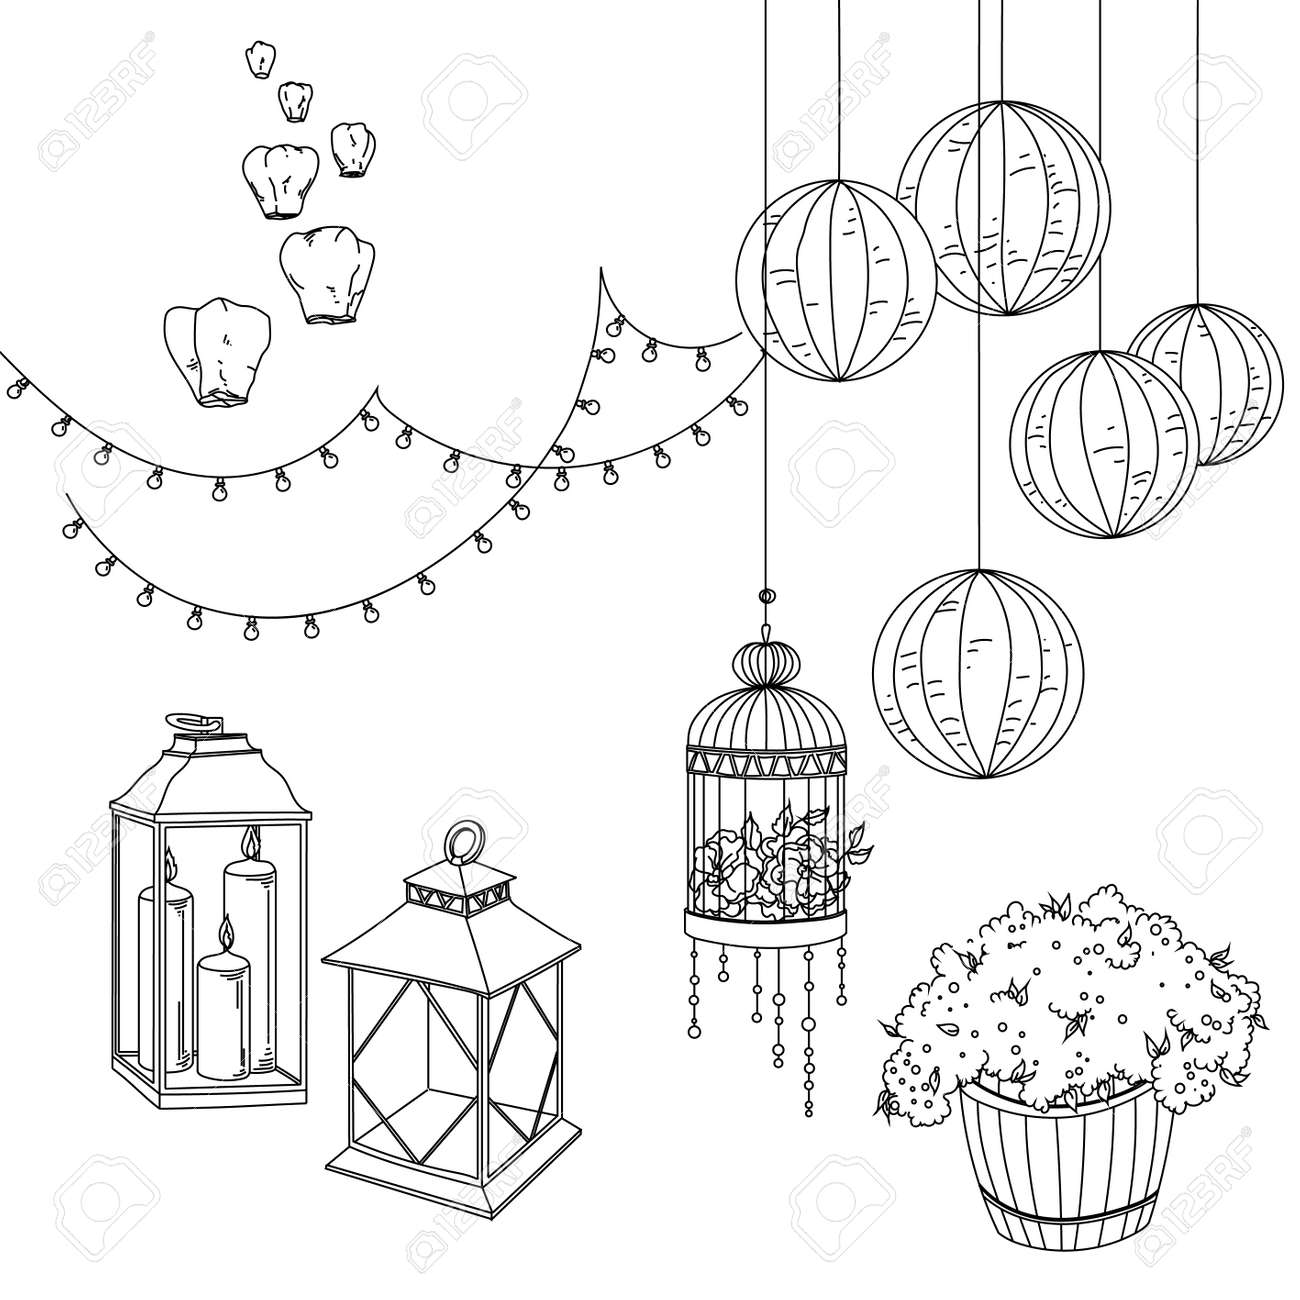 Set of wedding decorative elements and attributes in linear sketch set of wedding decorative elements and attributes in linear sketch stock vector 62436920 junglespirit Image collections